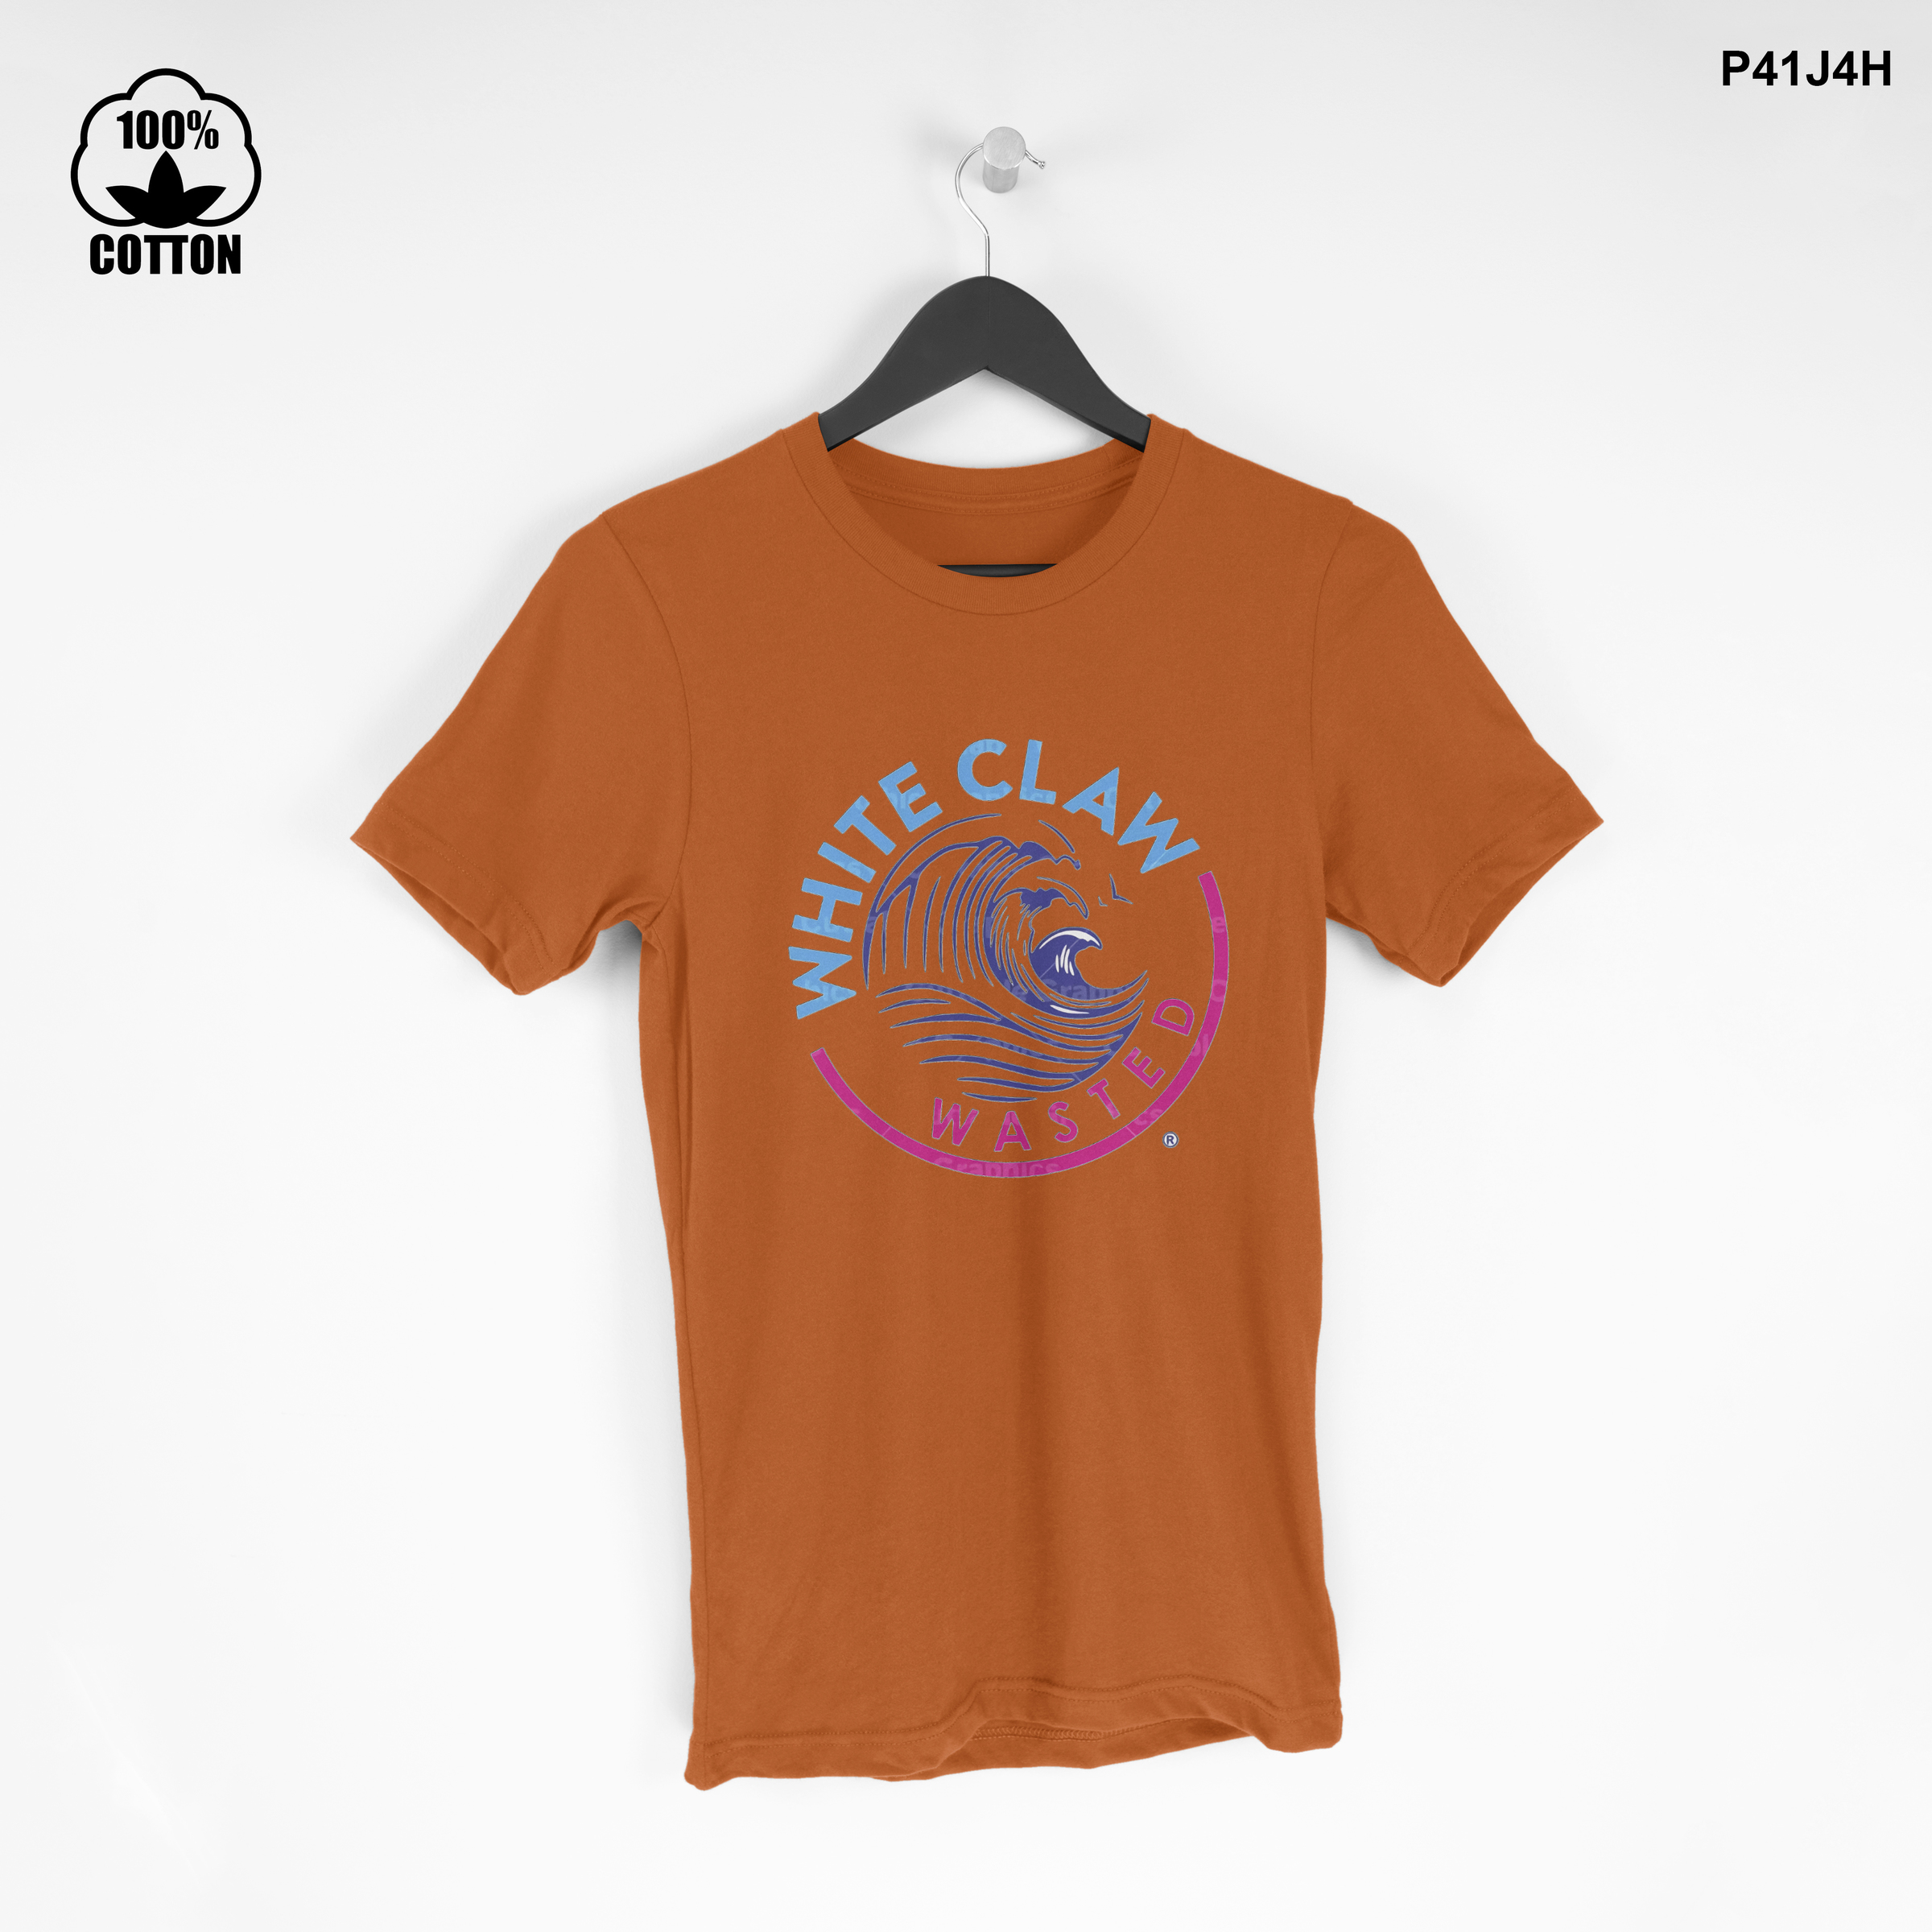 LIMITED EDITION!! Beer White Claw Hard Seltzer Carbonated Water Logo Cider T SHIRT TEE BEST GIVE Orange.jpg